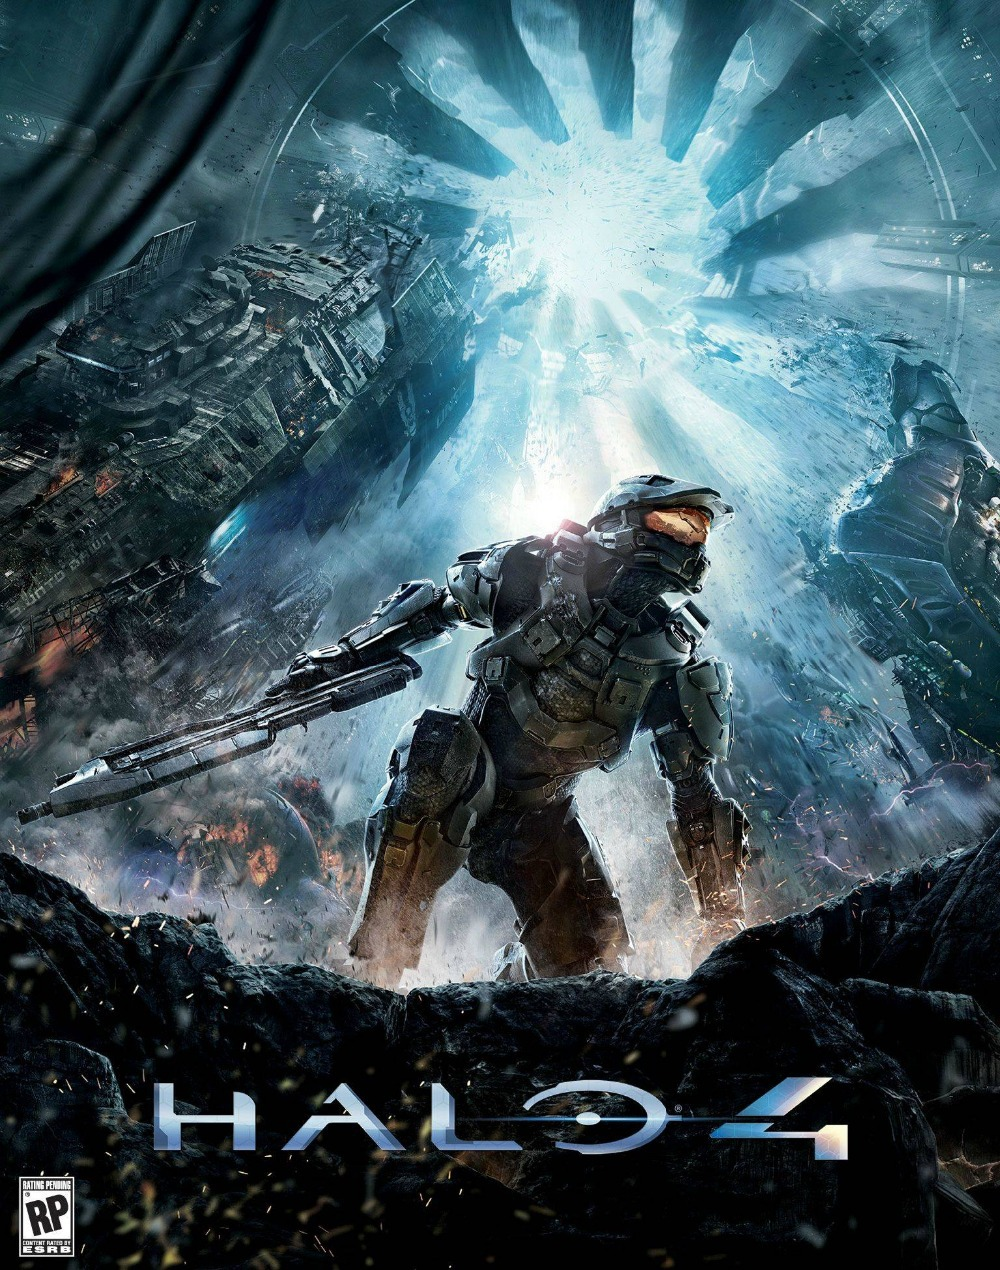 OEM video games halo 4 master chief warriors wallpaper stickers Mural Art Home print customized cute retro poster decor gifts(China (Mainland))